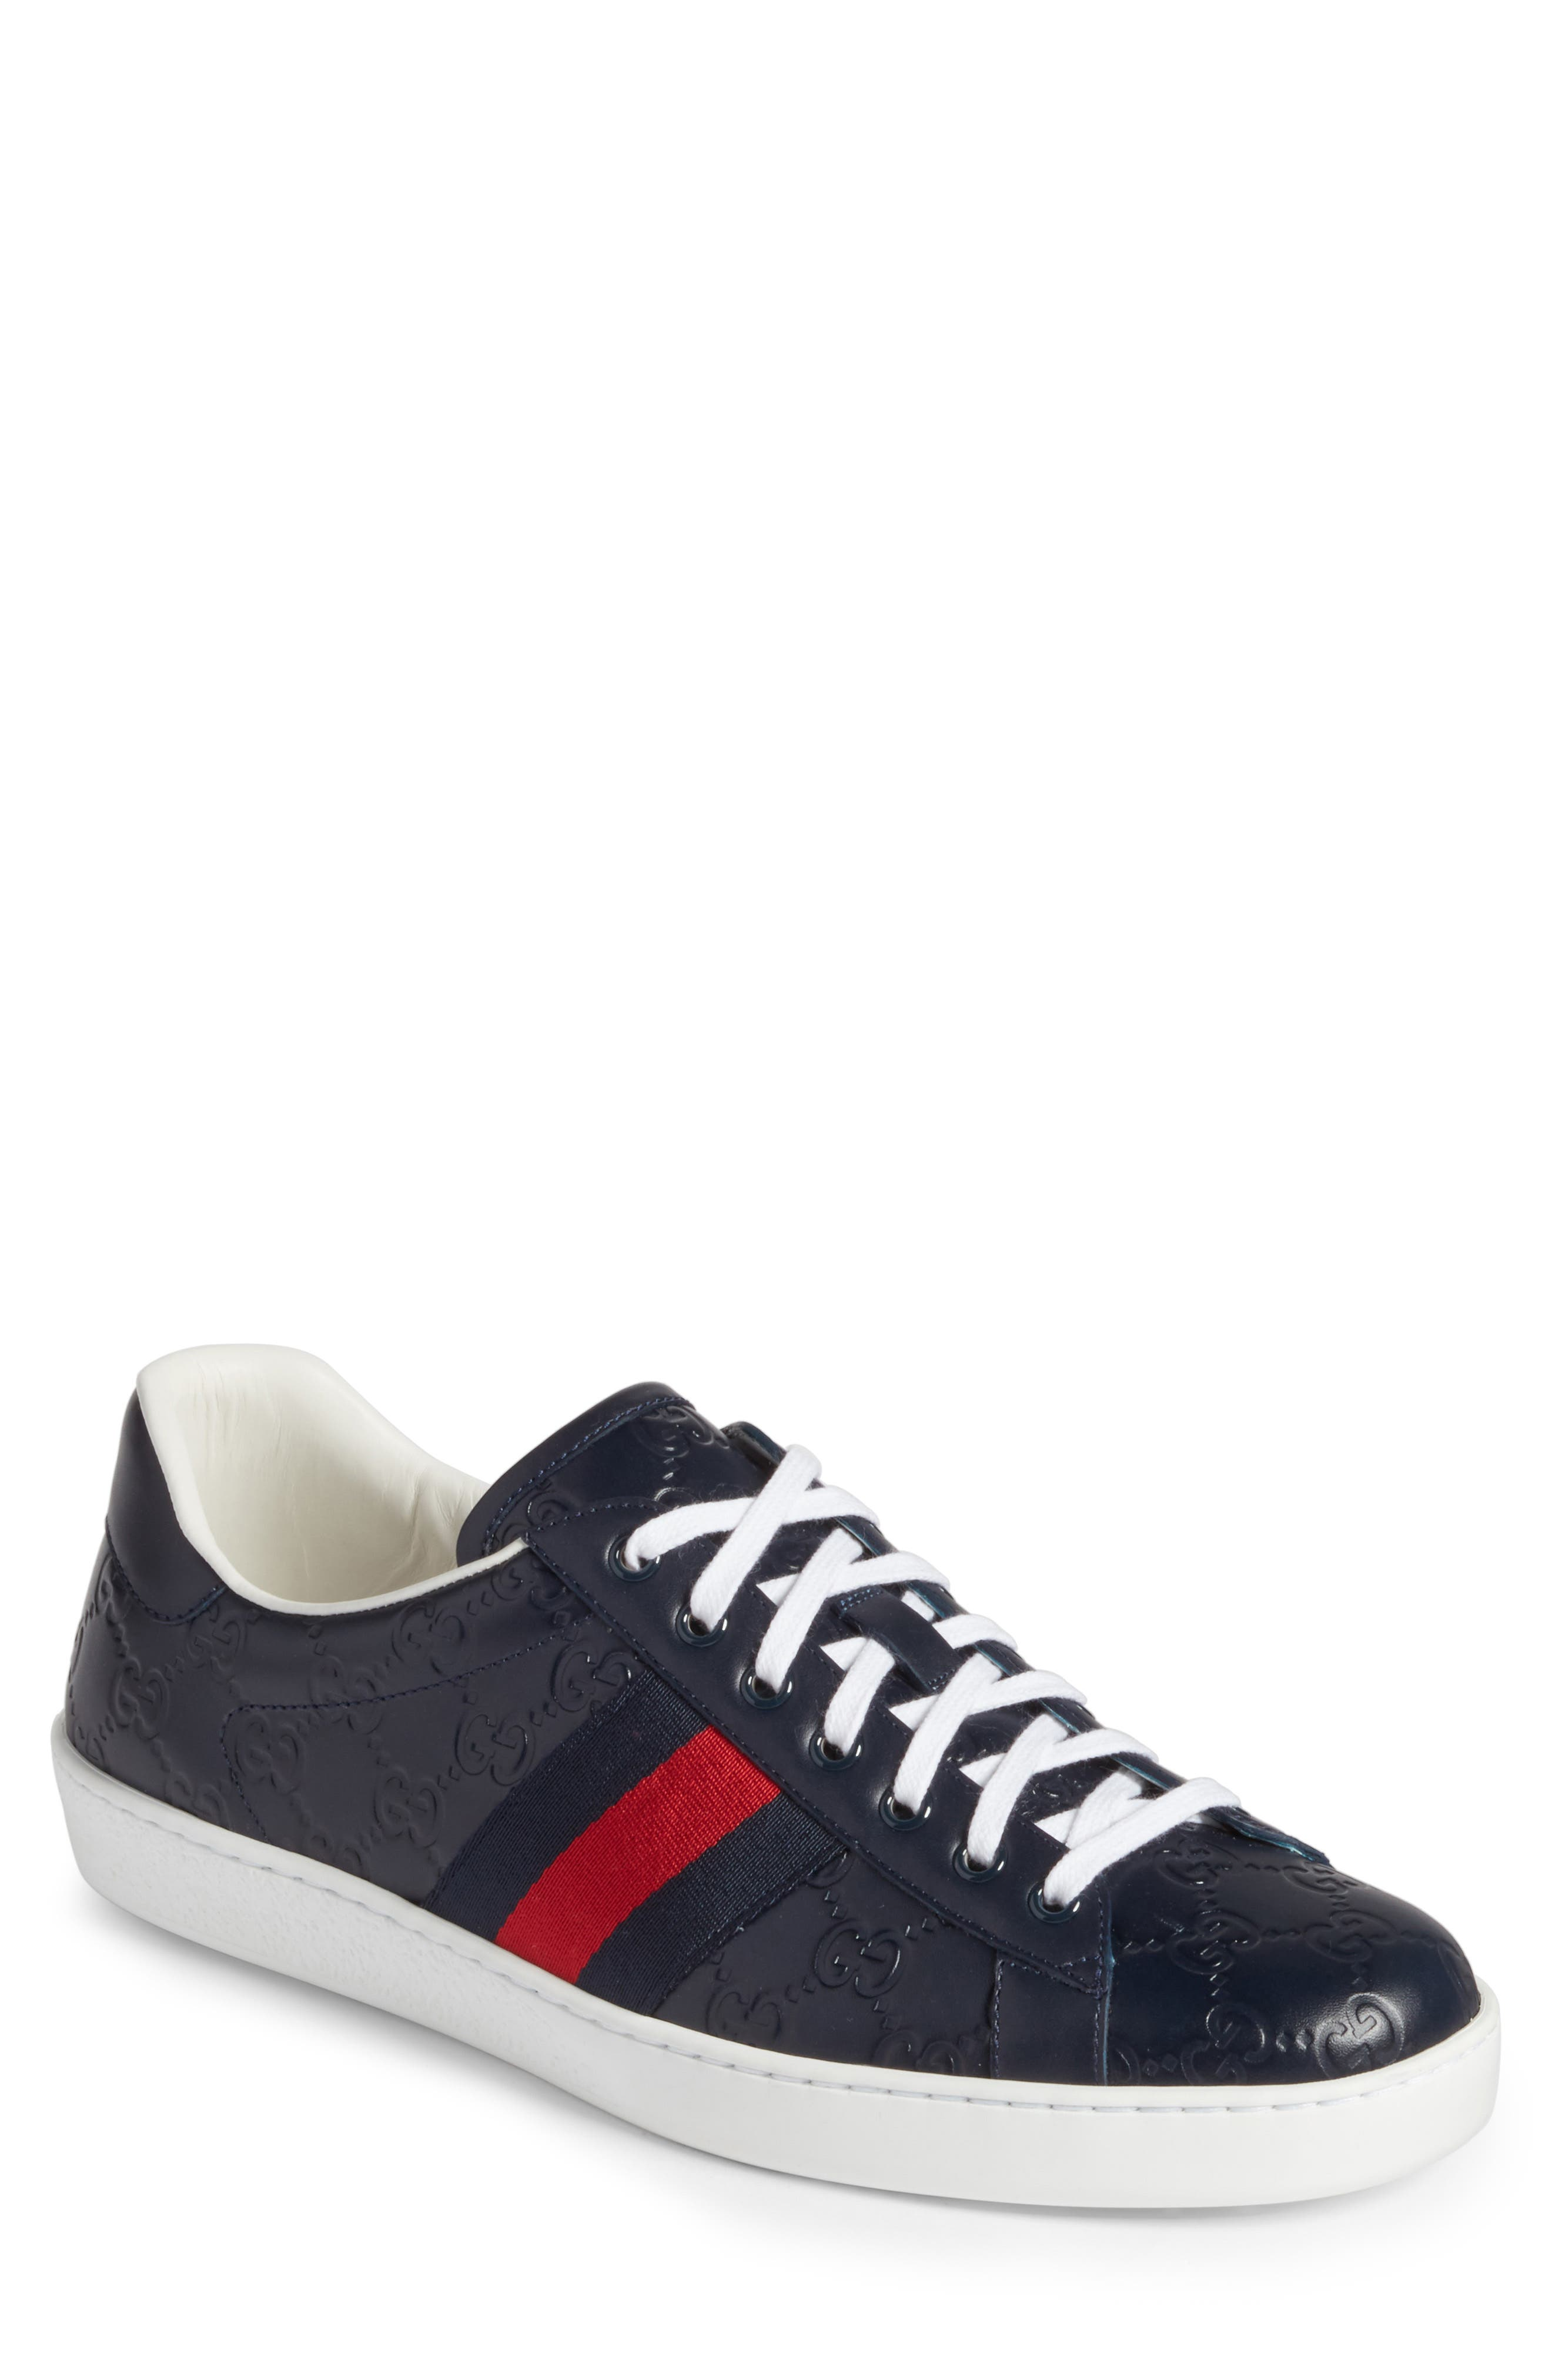 Alternate Image 1 Selected - Gucci 'New Ace' Sneaker (Men)